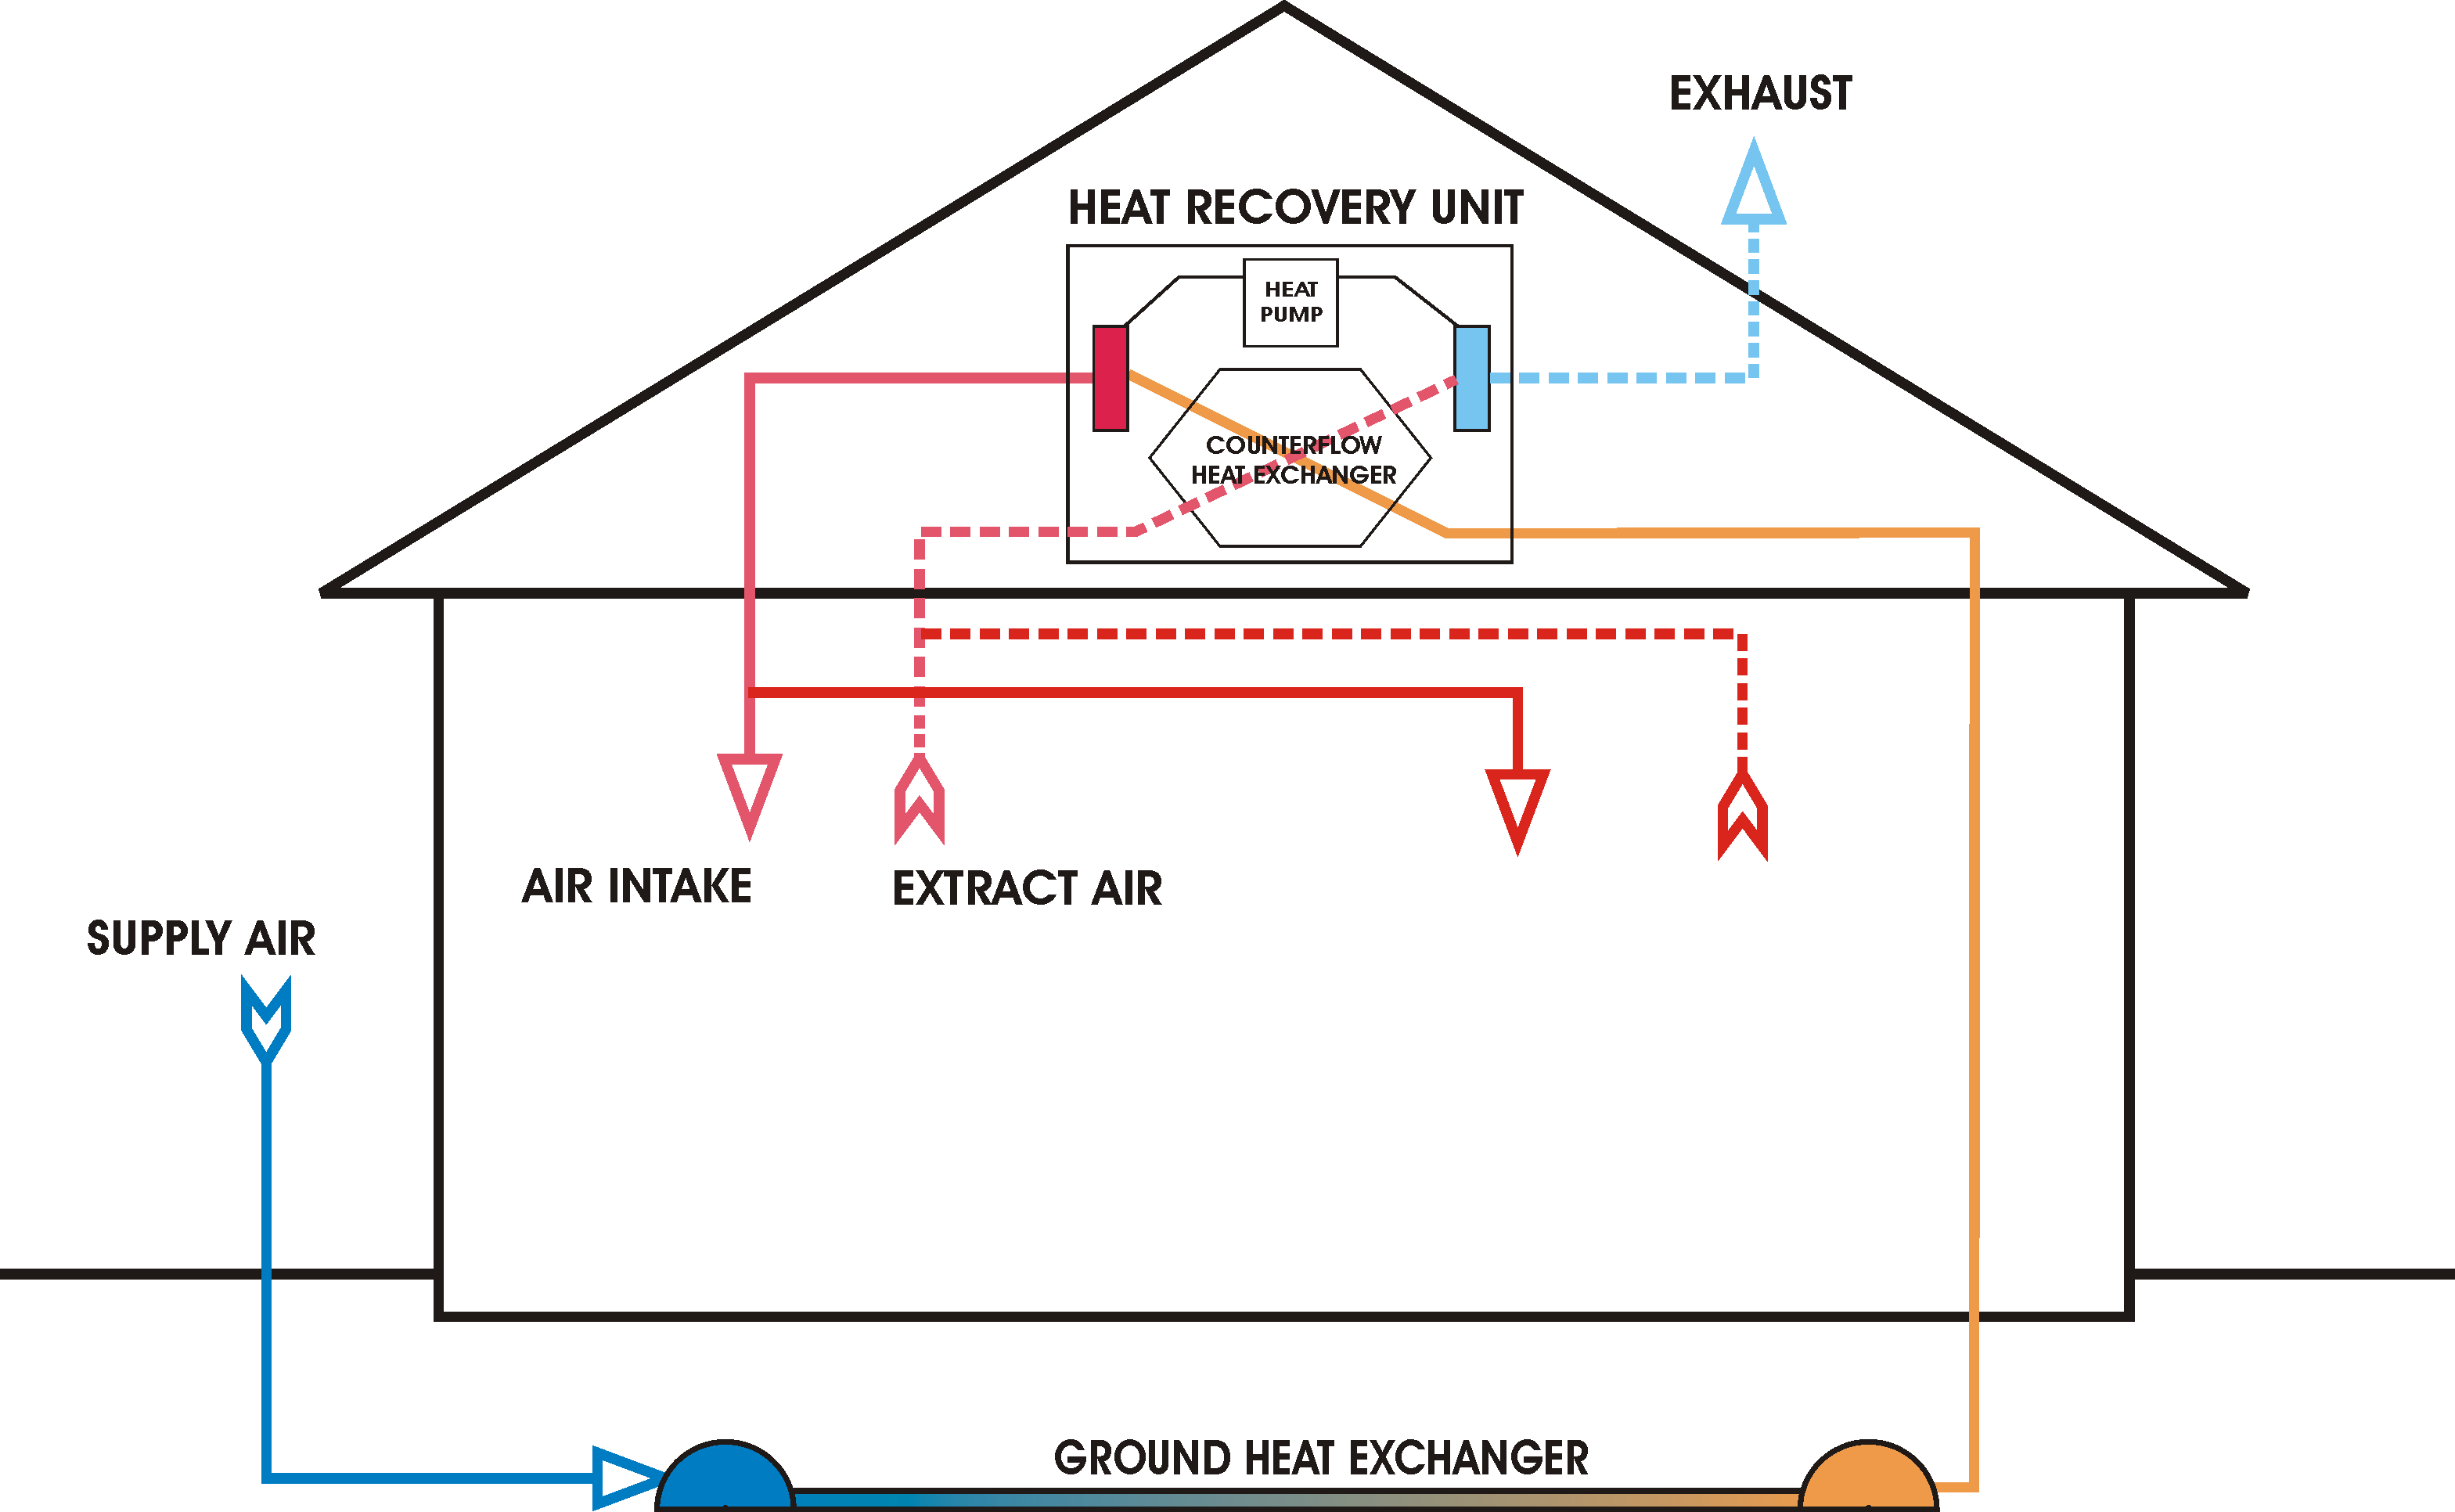 file:ventilation unit with heat pump & ground heat exchanger